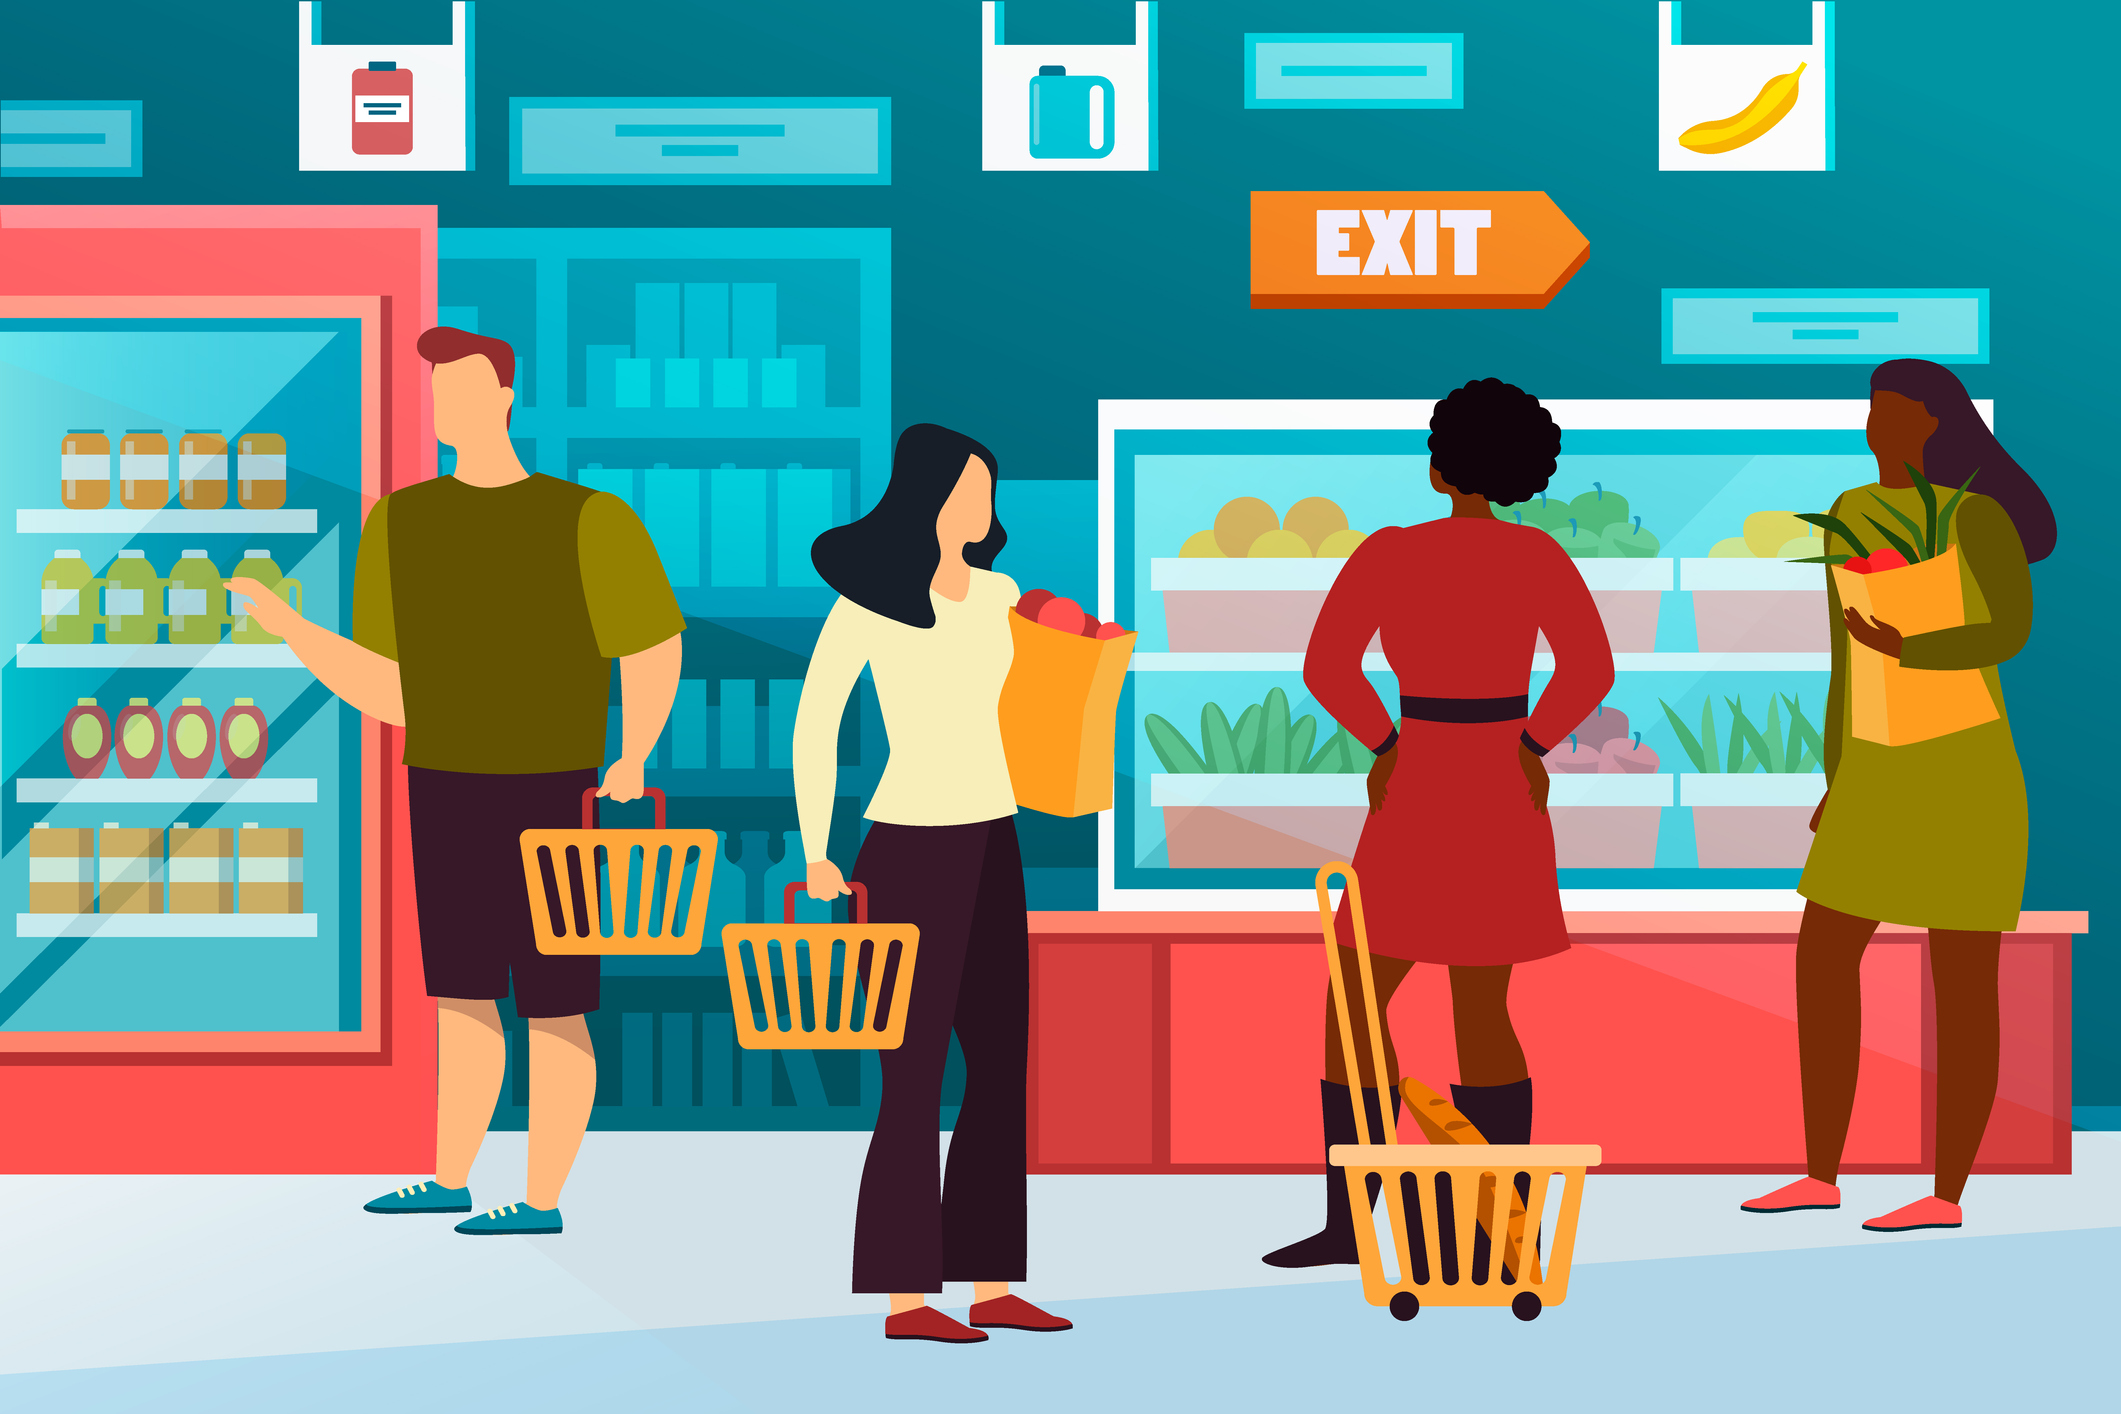 Cartoon people at grocery shop or healthy food store. Simple man with basket of fruit and flat woman with pack of vegetables. Buyer at mall or market, vegan counter with dairy. Showcase, trade theme